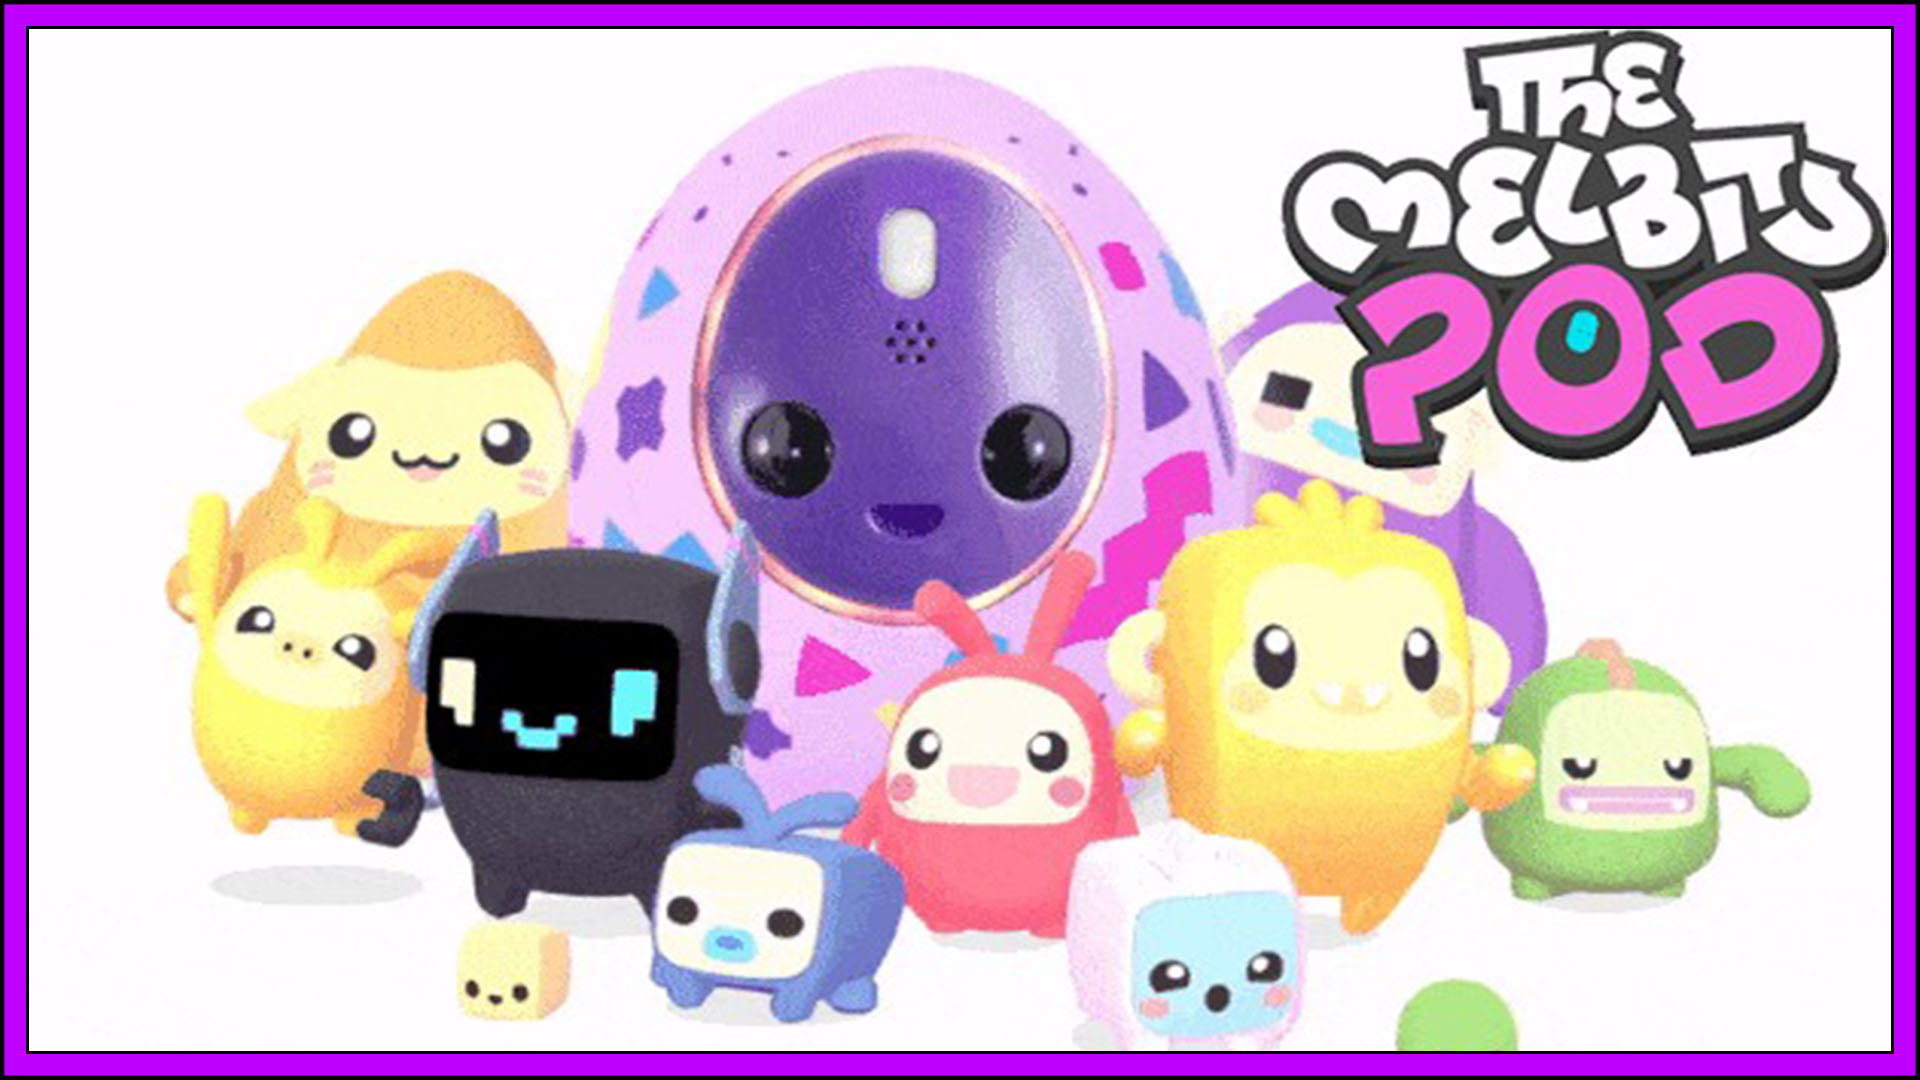 Melbits POD – Hands on Preview and Kickstarter information (Physical/Digital Toy) Preview